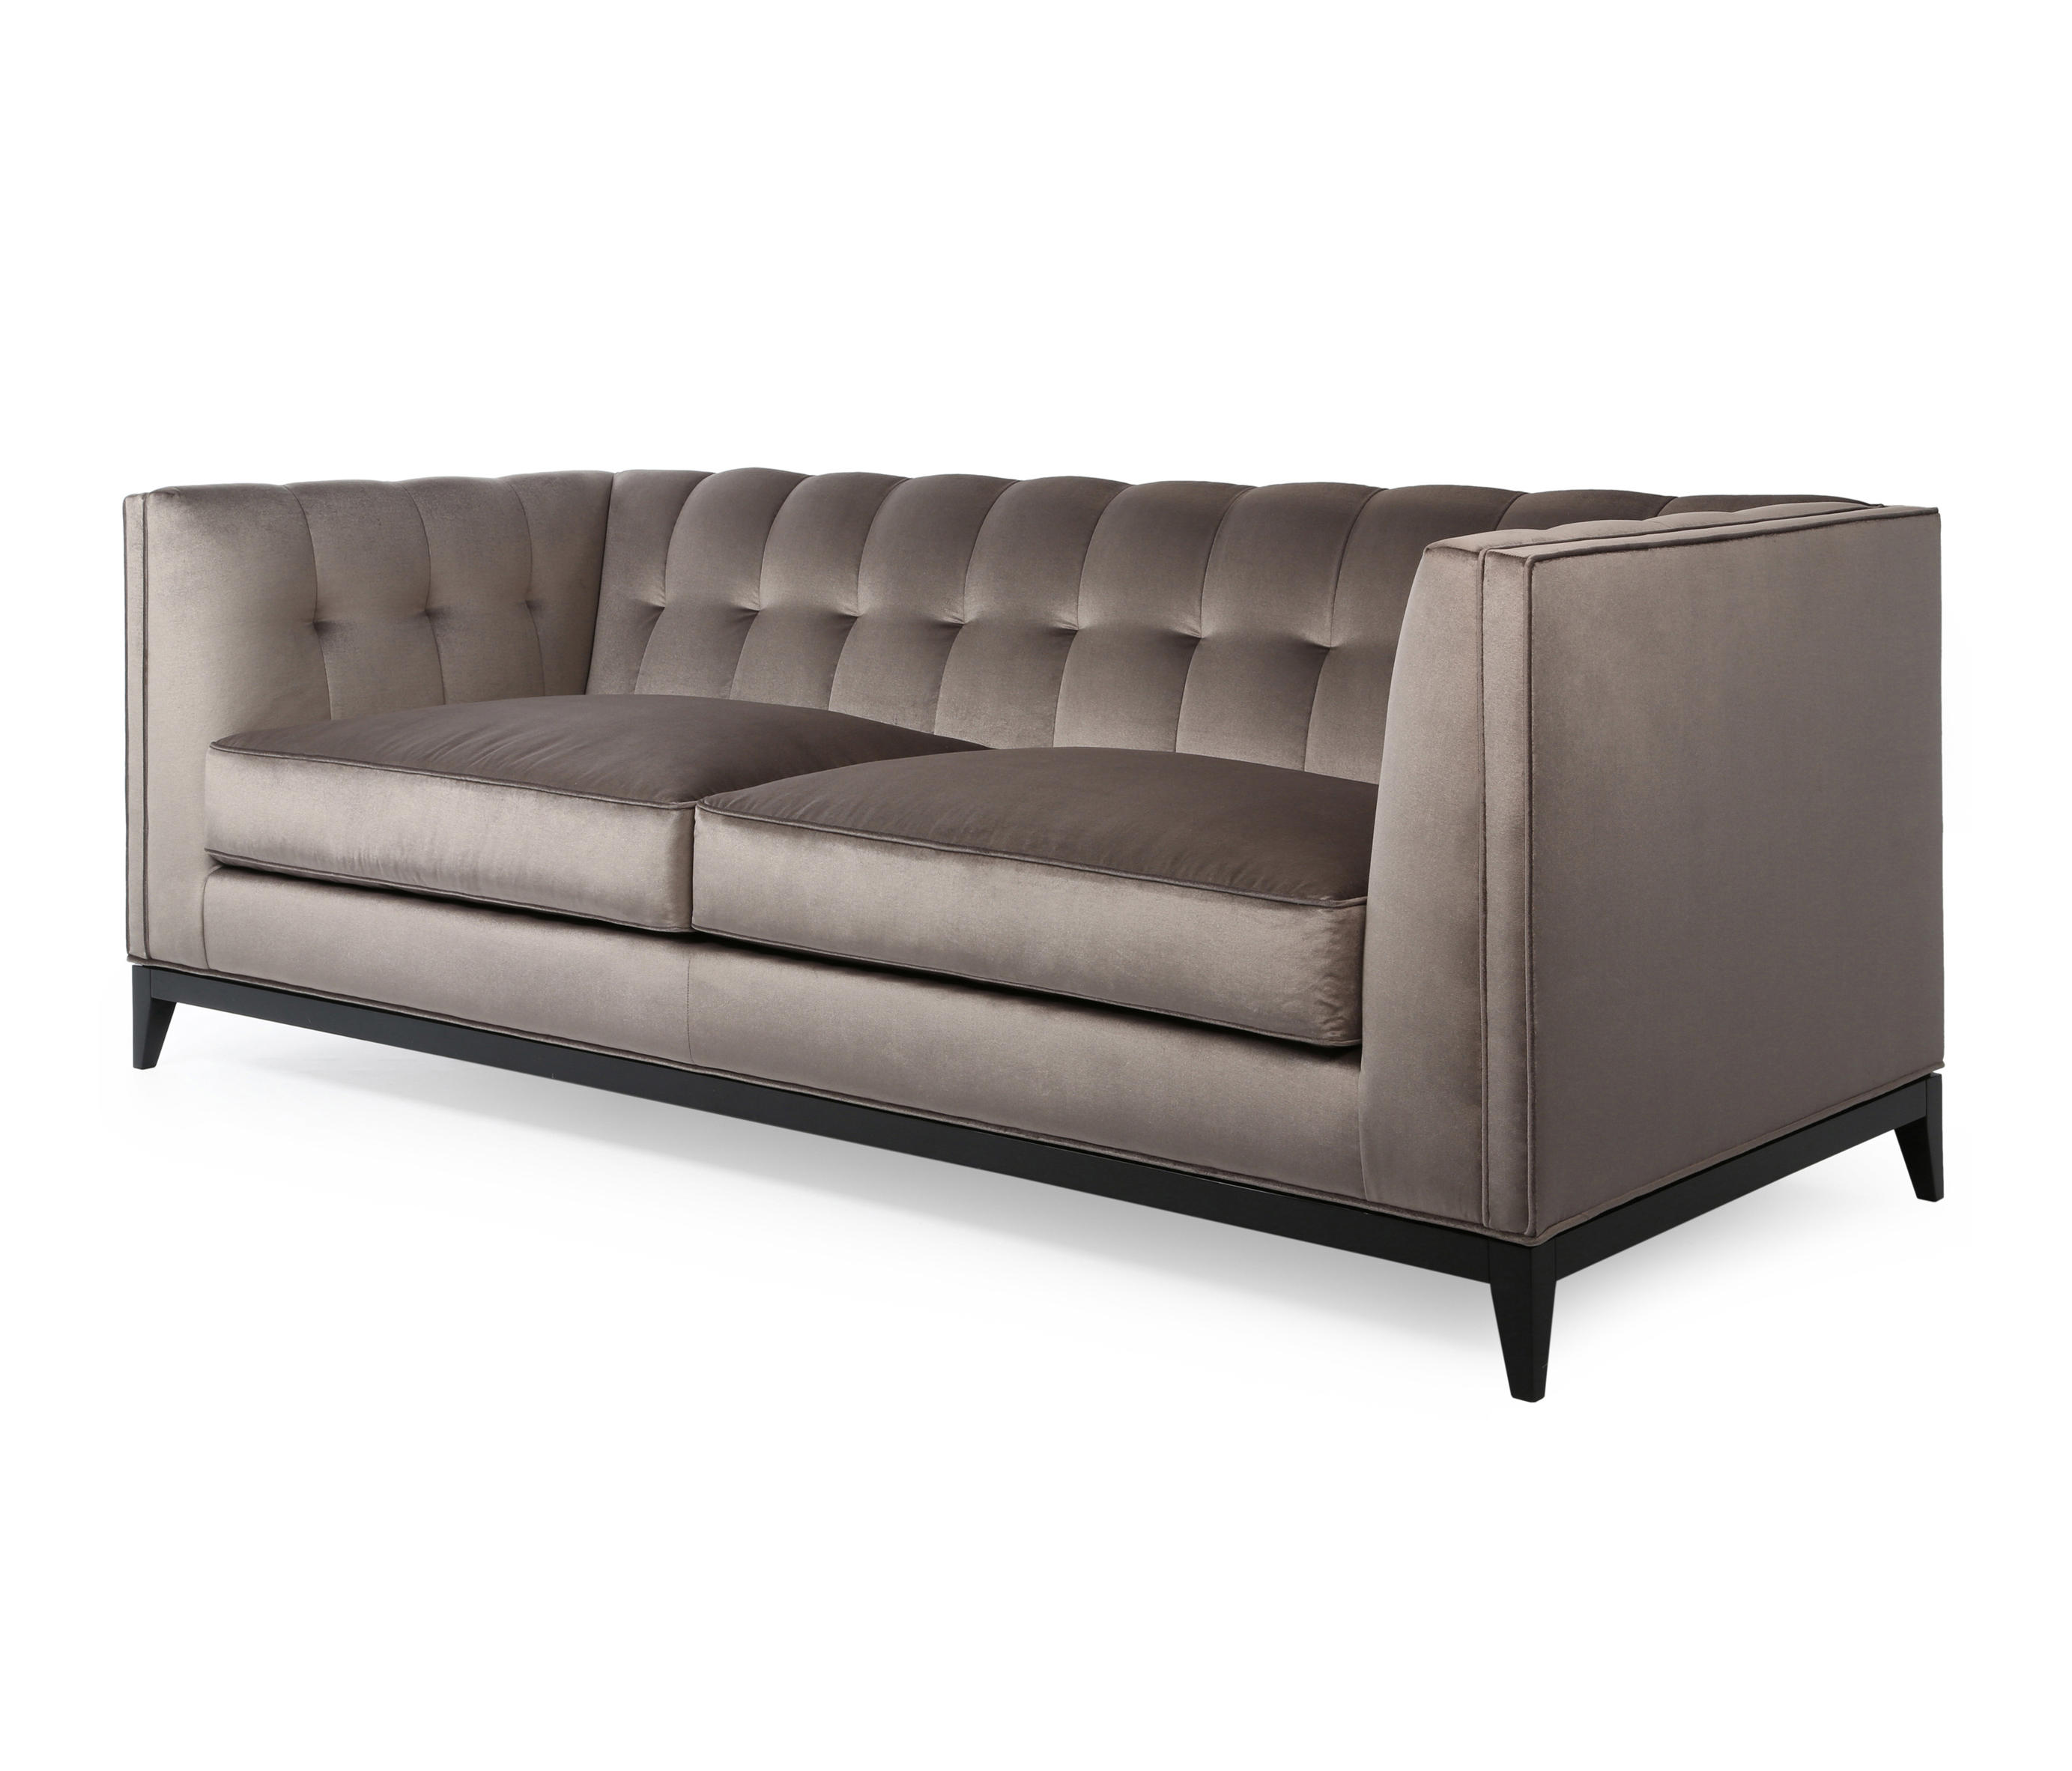 ALEXANDER SOFA - Sofas from The Sofa & Chair Company Ltd | Architonic